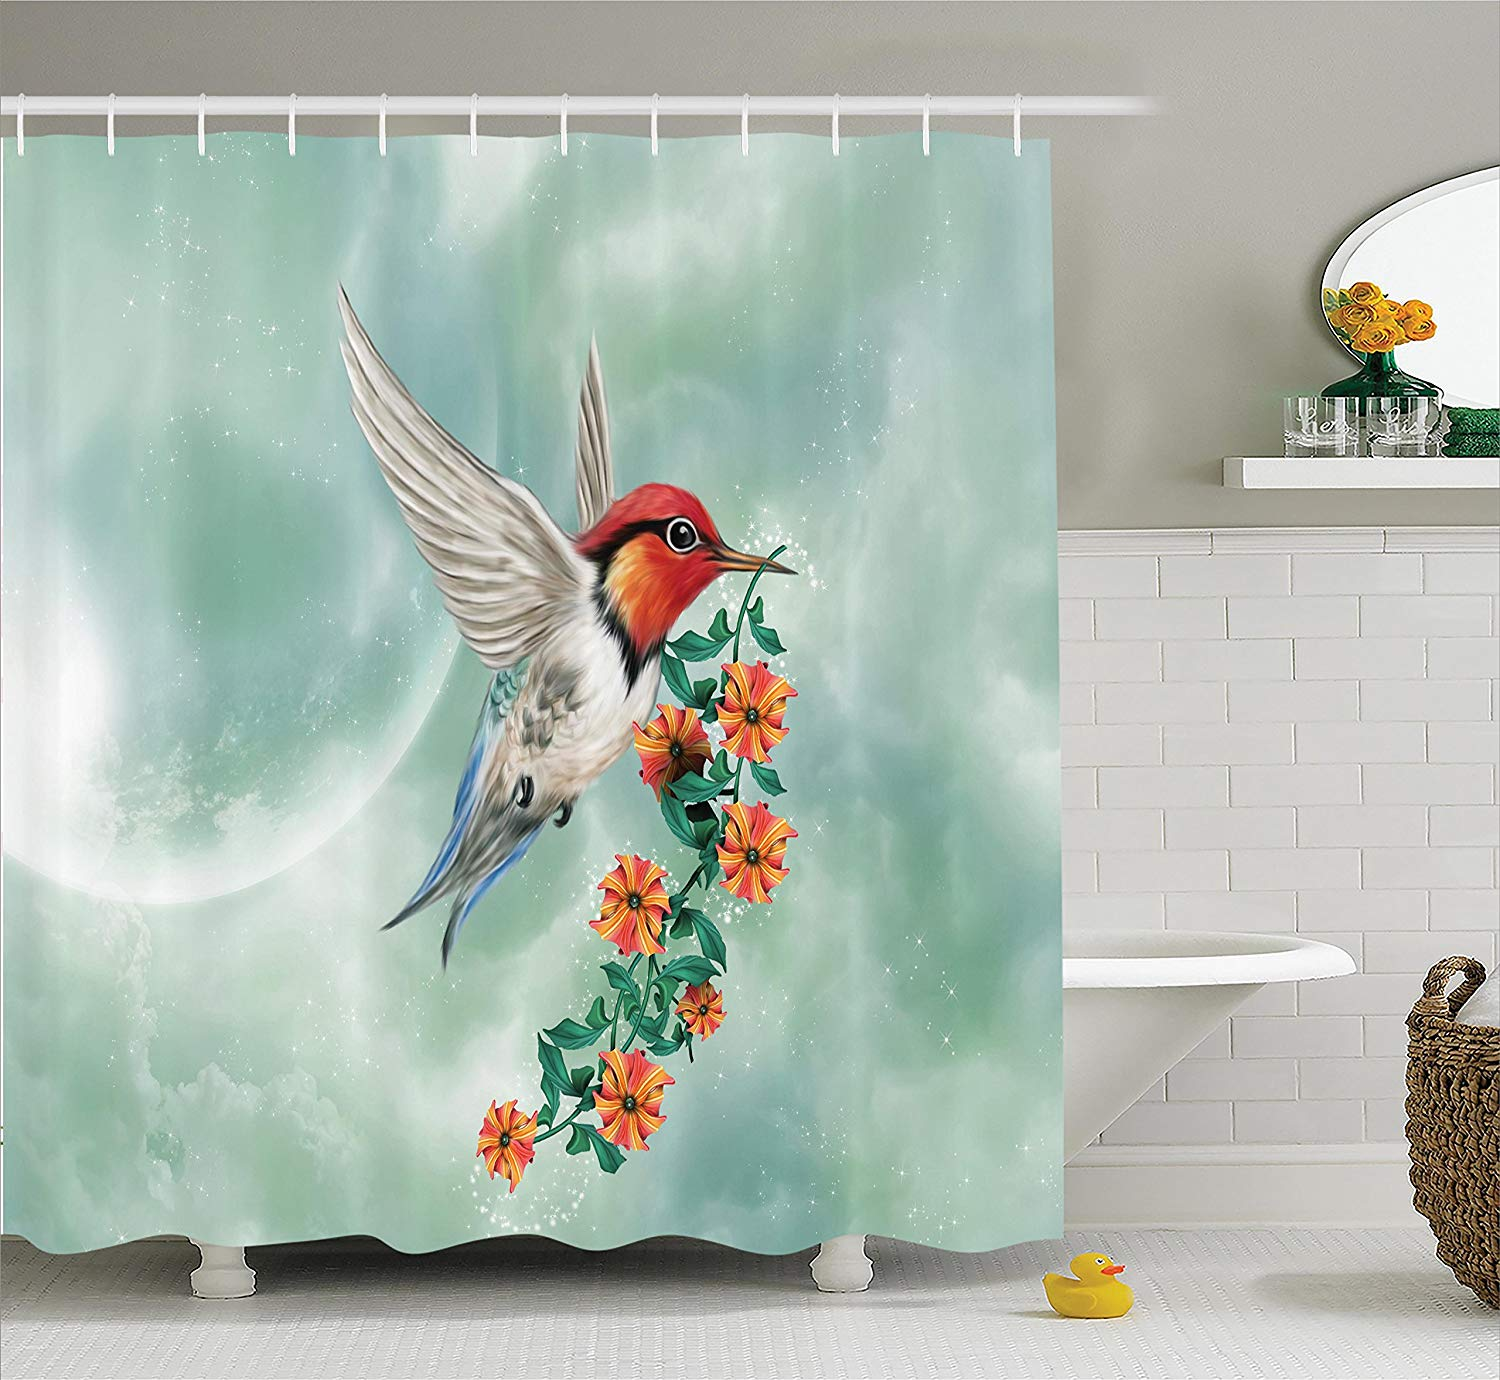 Gallery Of Hummingbird Bathroom Accessories Hummingbirds Decorations Shower Curtain A Is Flying With